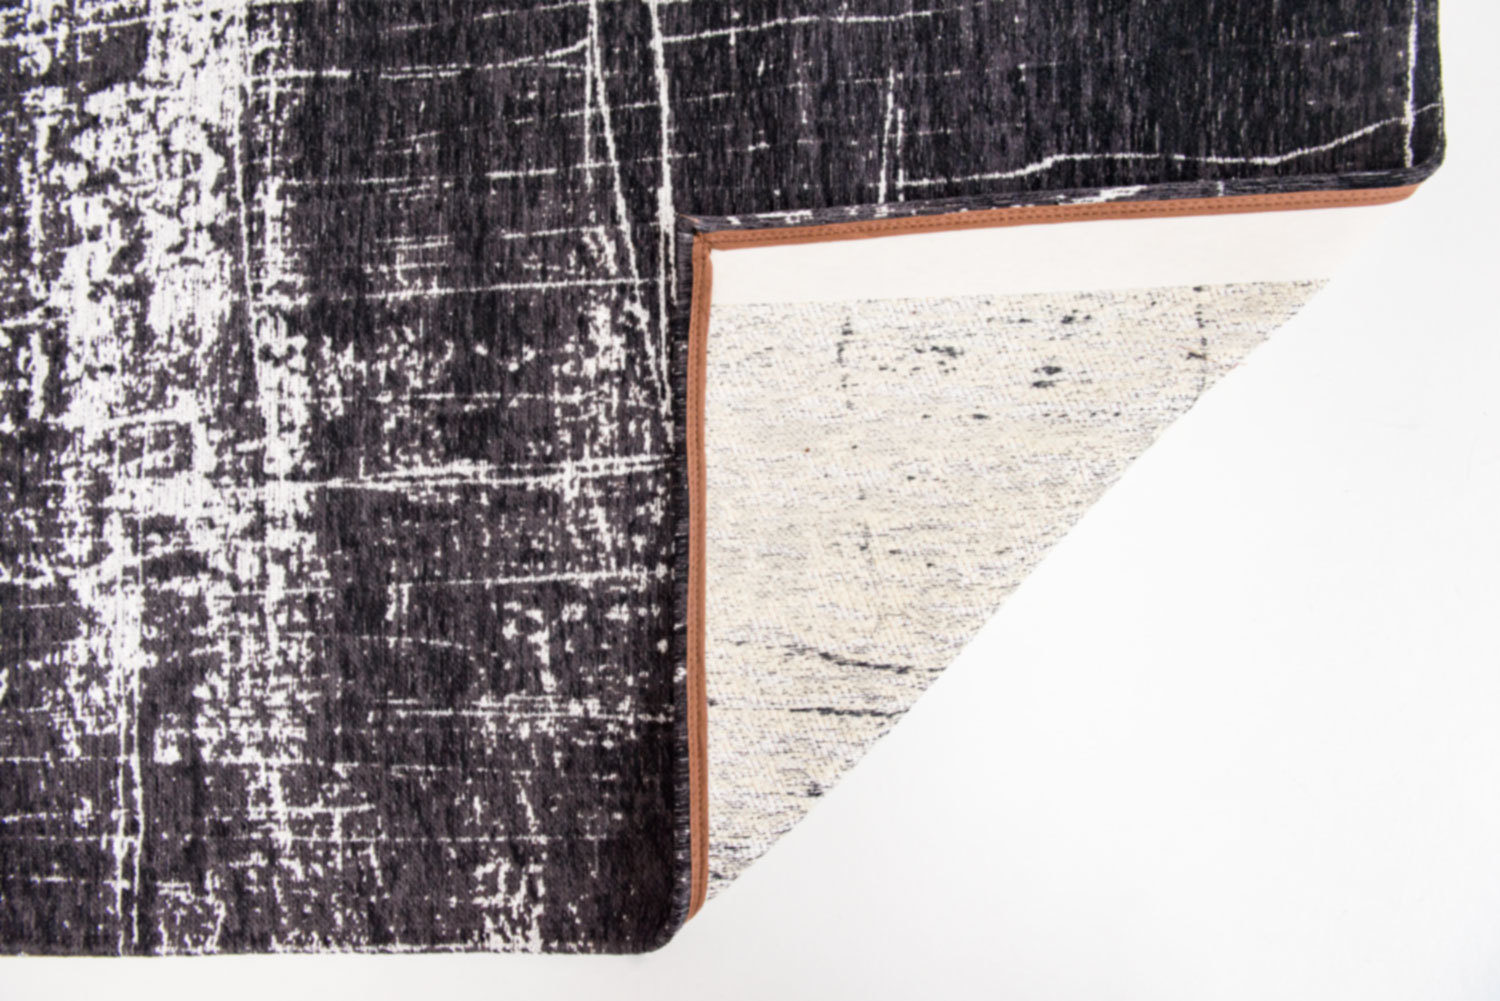 A mix of straight and broken lines, of dull and shining yarns, of smooth and ragged pencil strokes.